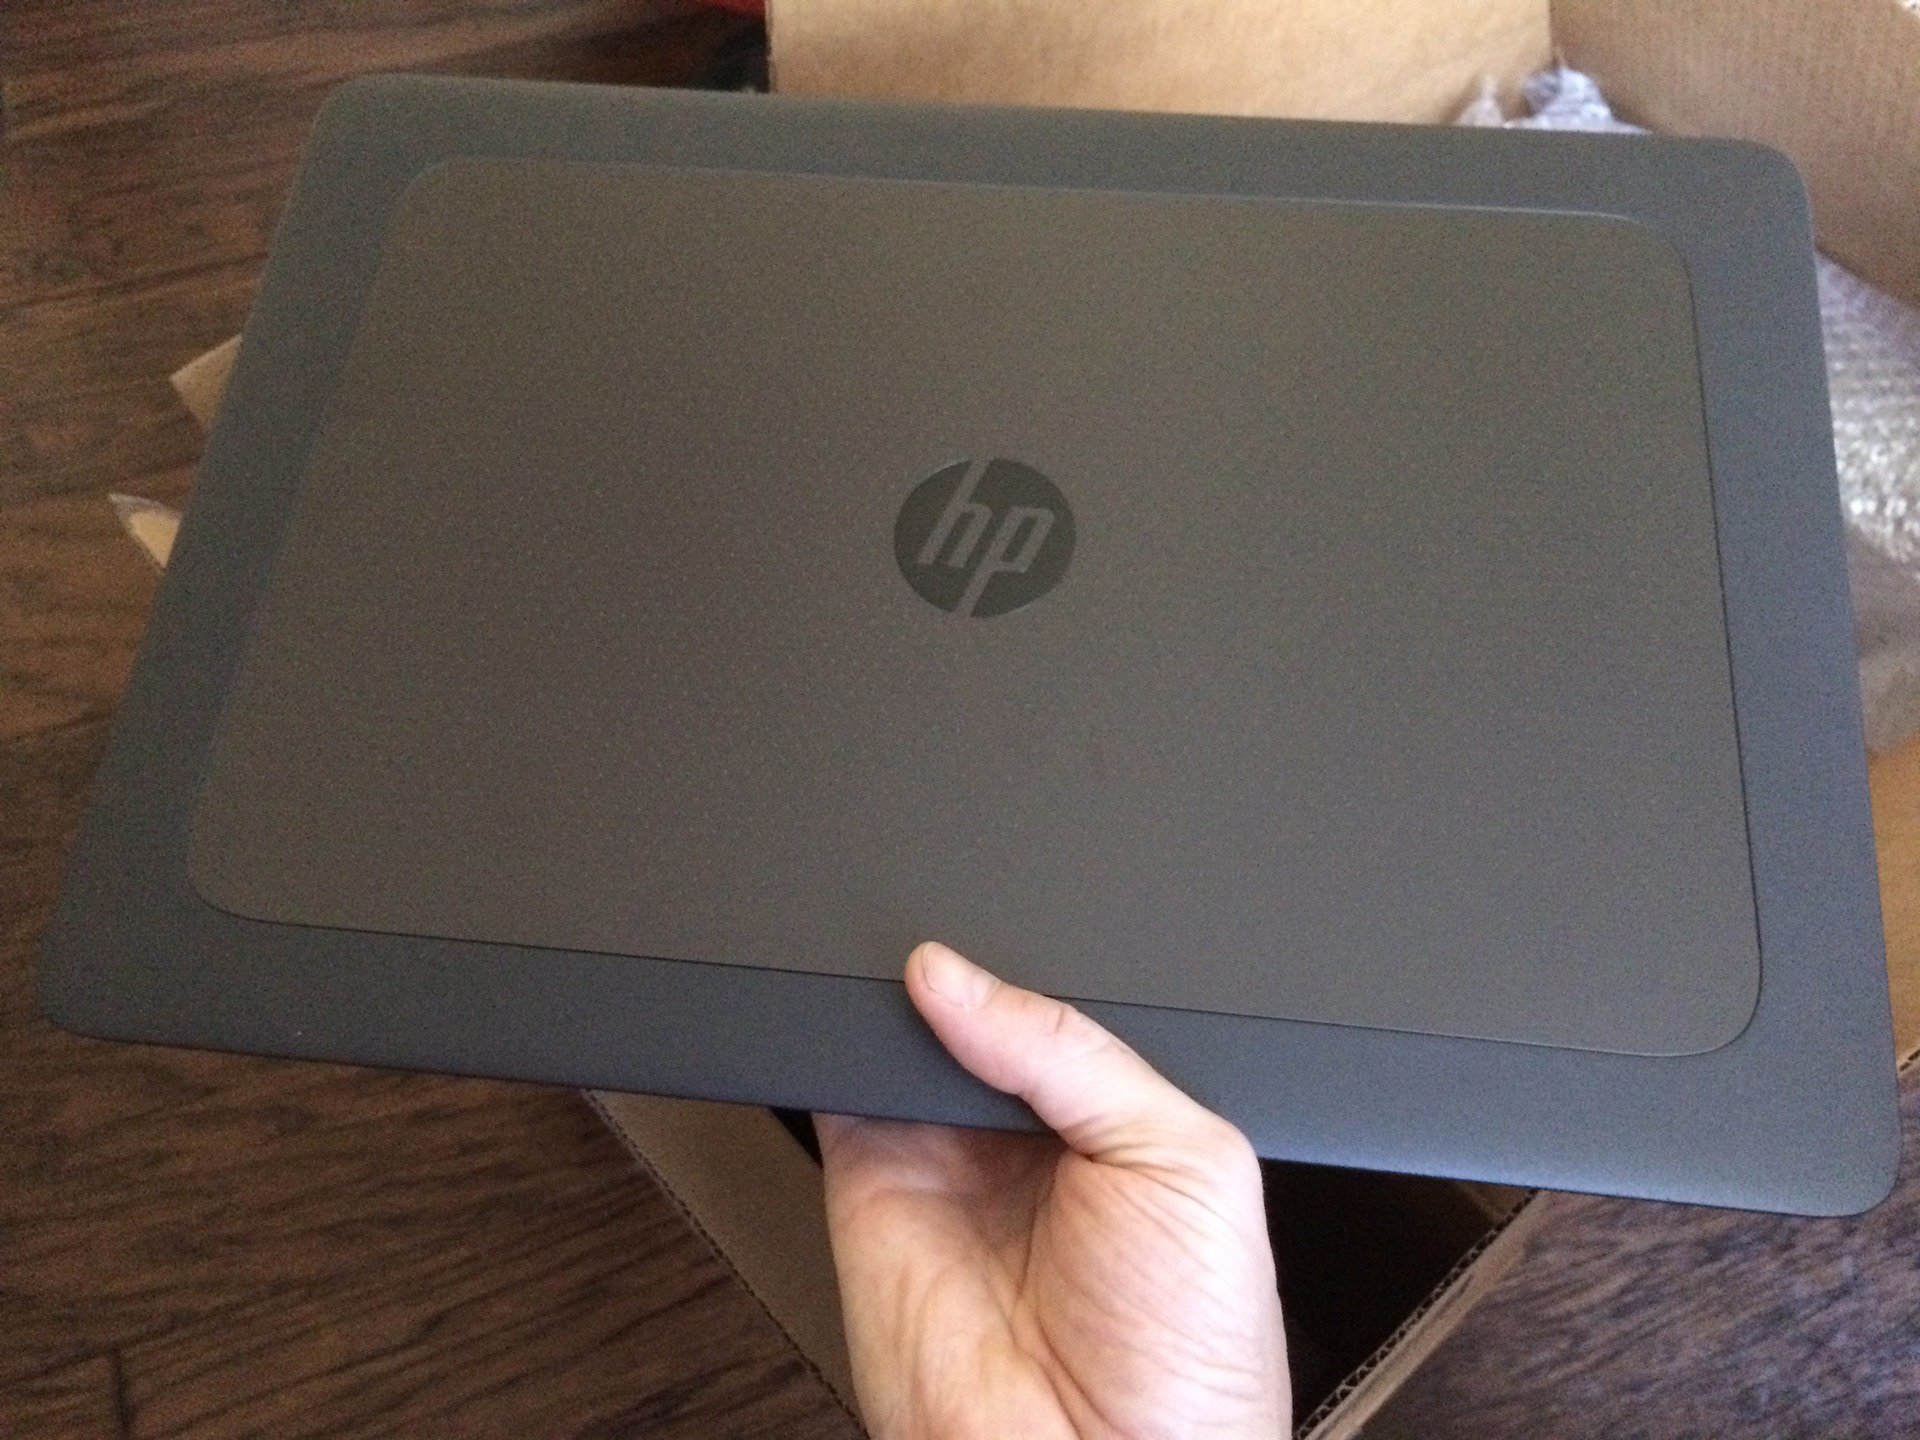 HP ZBook 15 G3 Mobile Workstation [Review] - SolidSmack